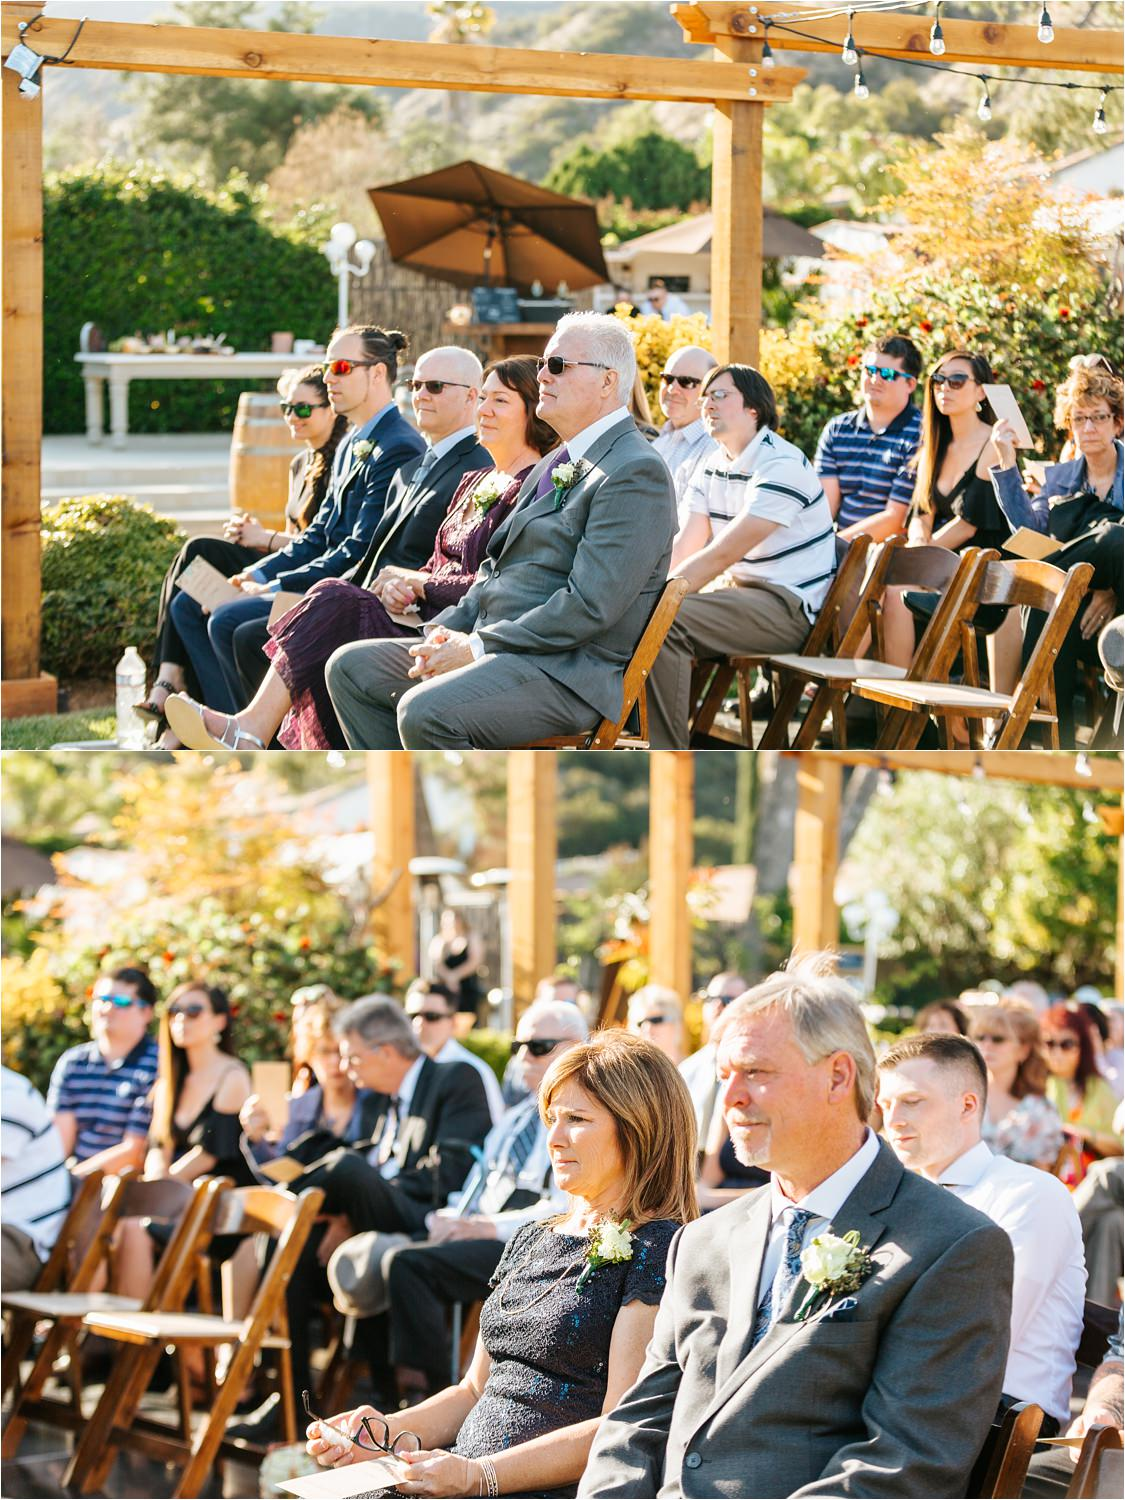 Parents of the Bride and Groom during the Wedding Ceremony - https://brittneyhannonphotography.com